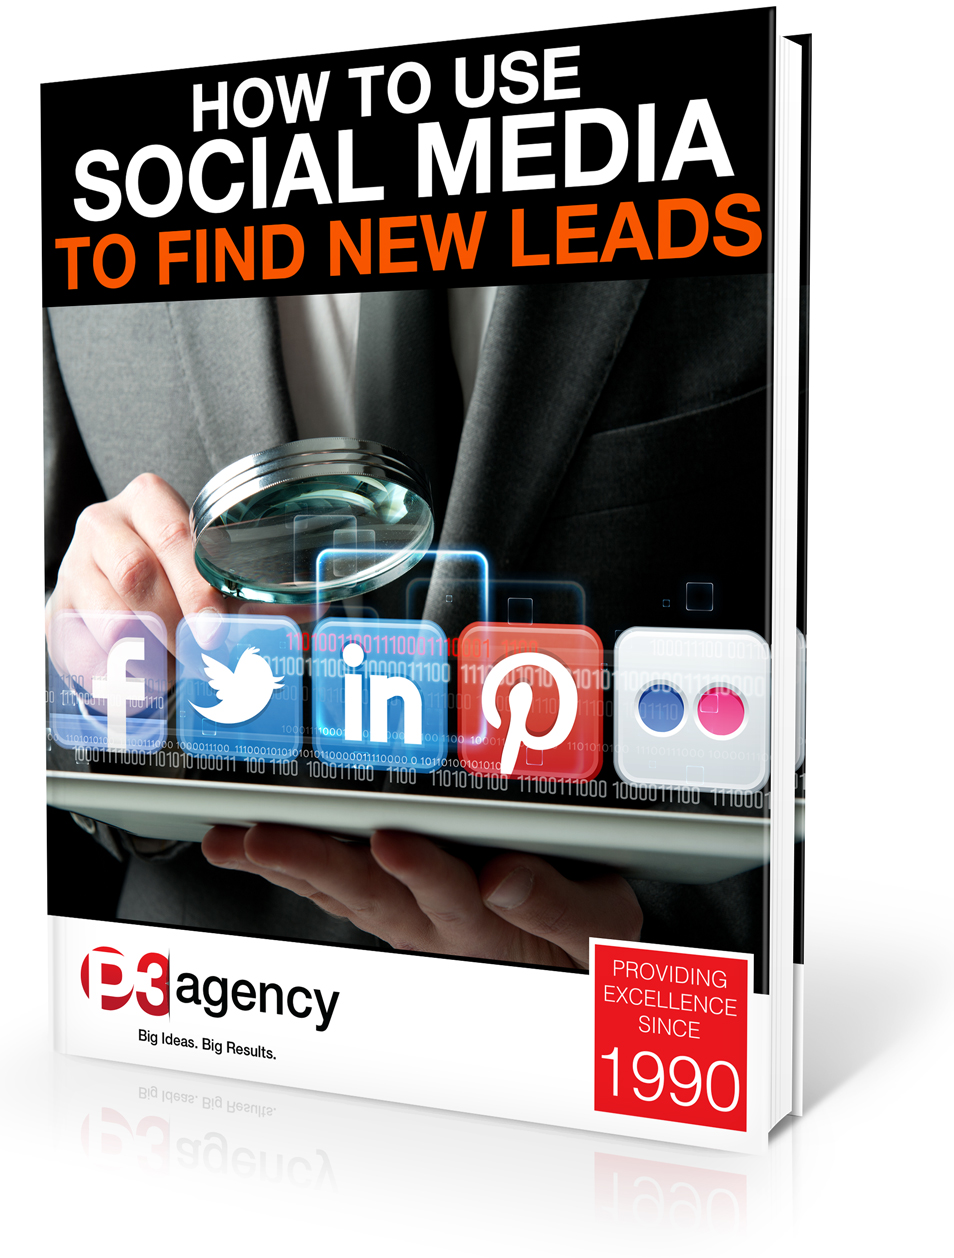 How to Use Social Media to Find New Leads